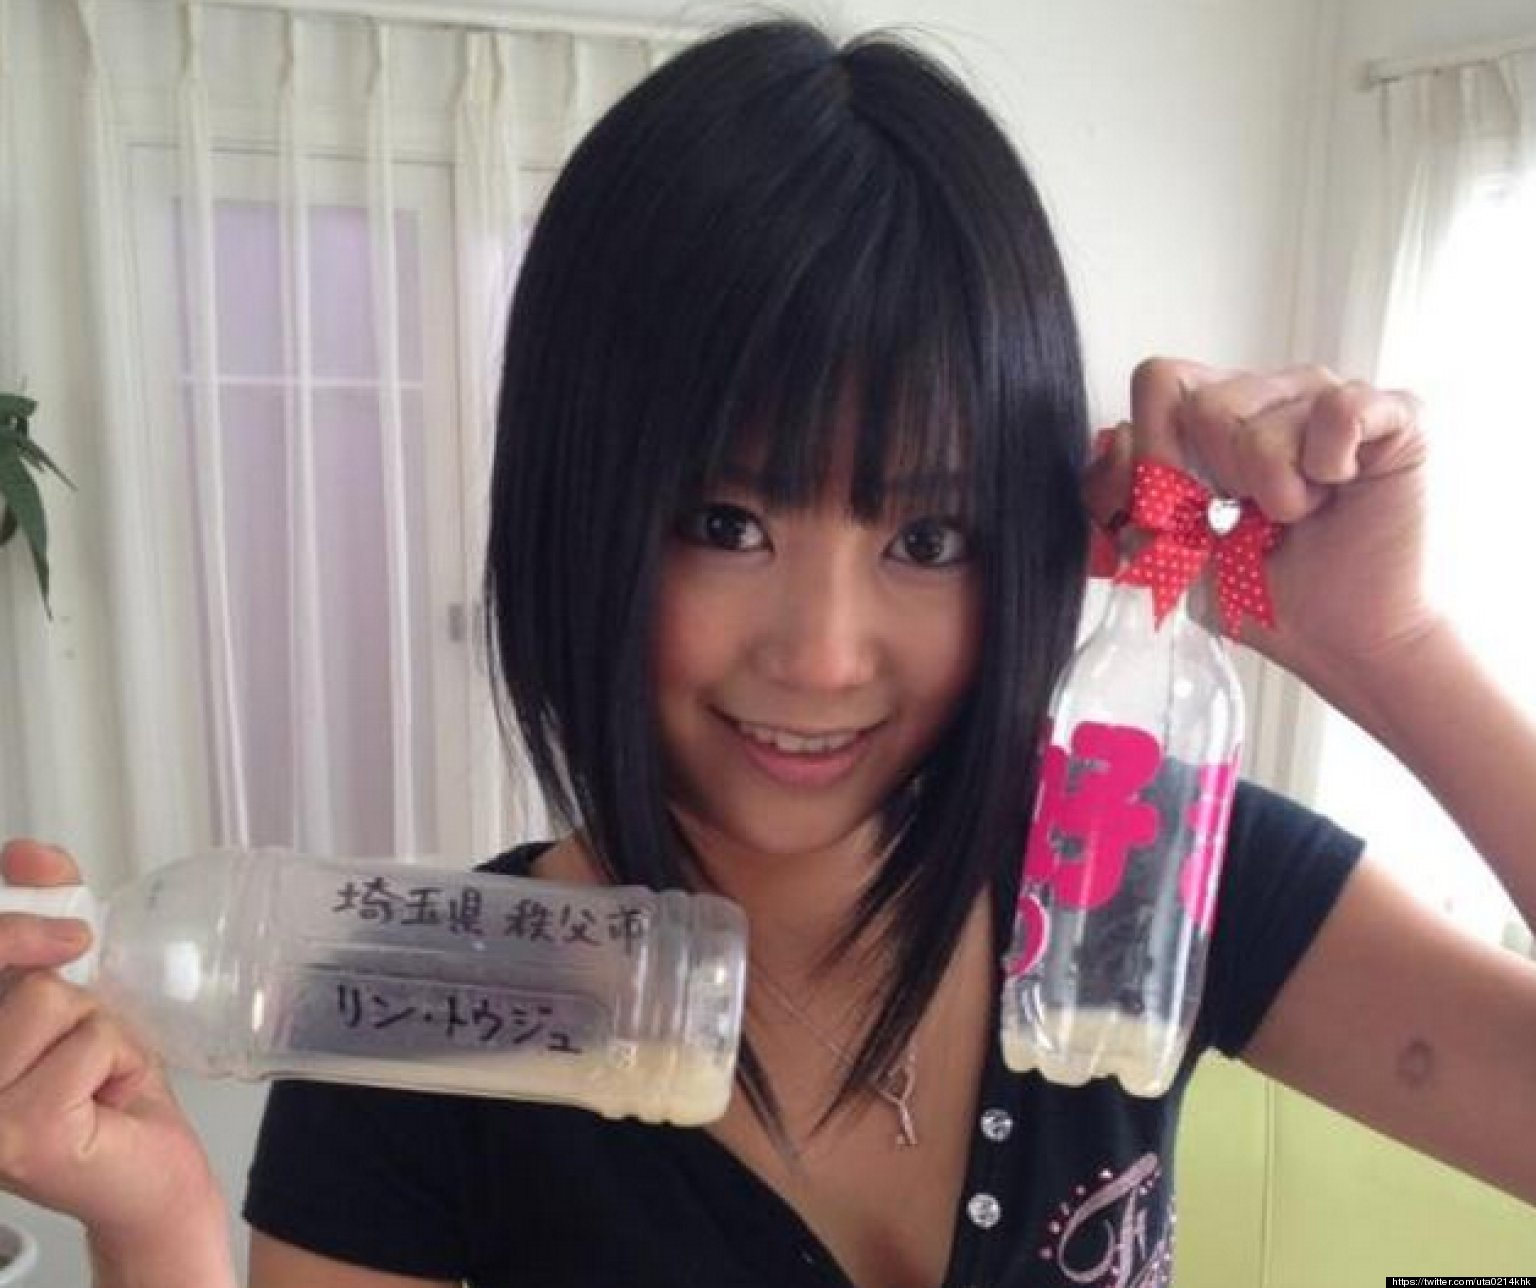 Uta Kohaku, Japanese Porn Actress, Gets 100 Bottles Of Semen From Fans Nsfw  Huffpost-4340